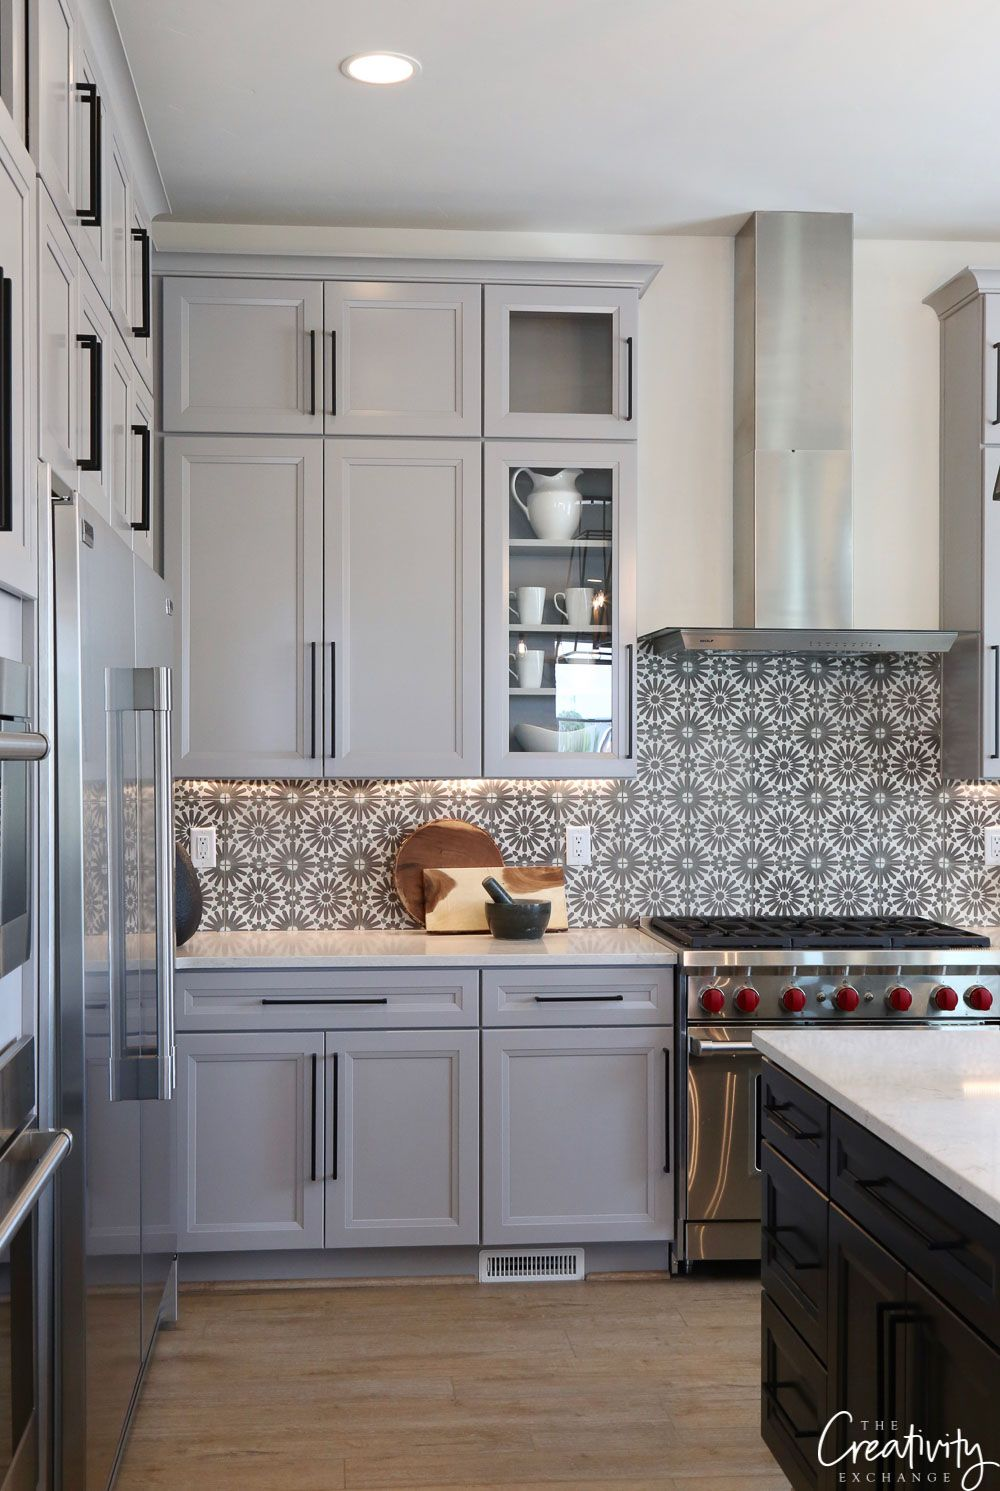 2018 Salt Lake City Parade Of Homes Recap Kitchen Cabinet